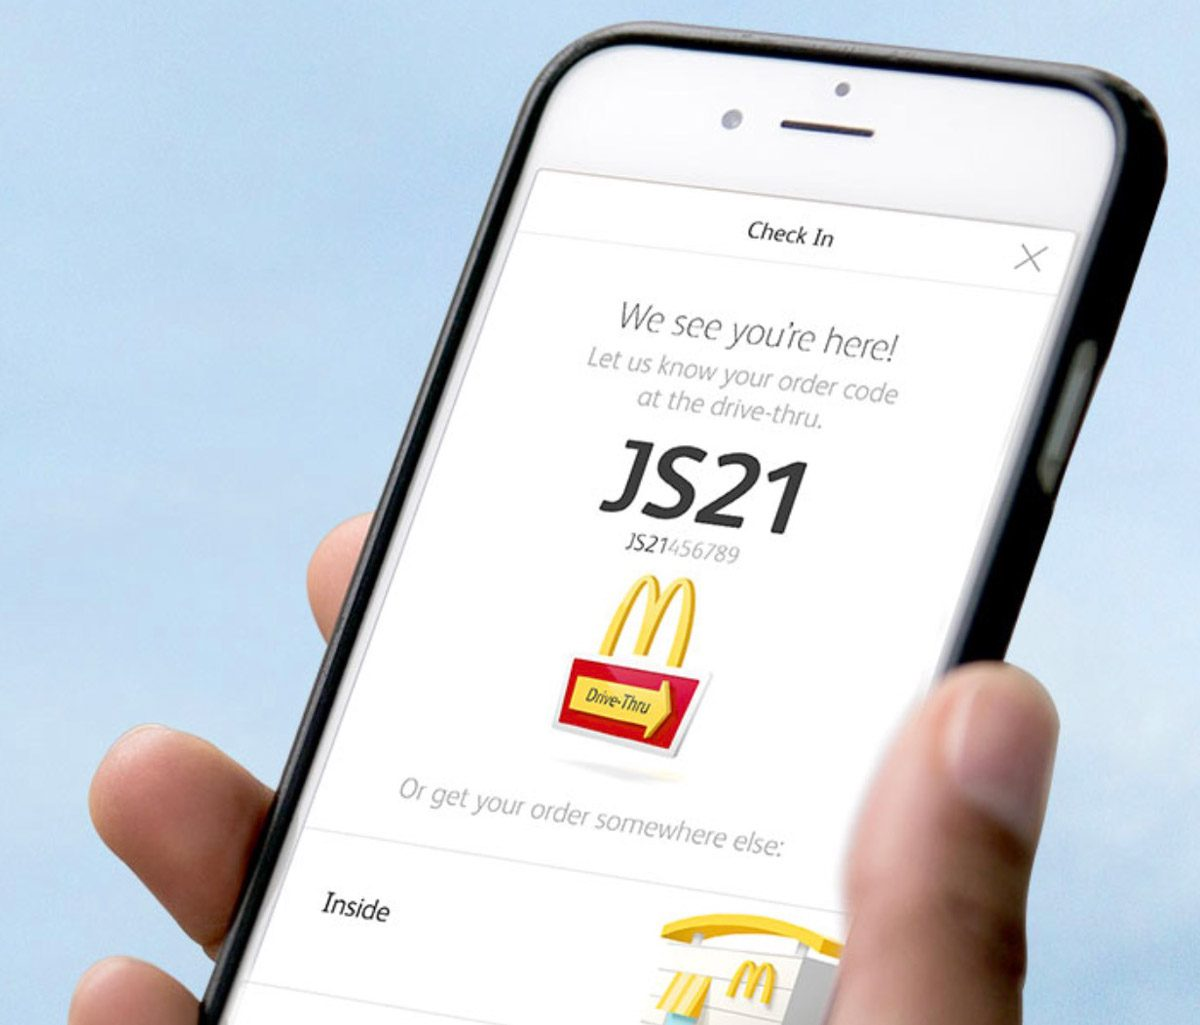 Someone holding an iPhone with McDonald's Mobile Ordering app